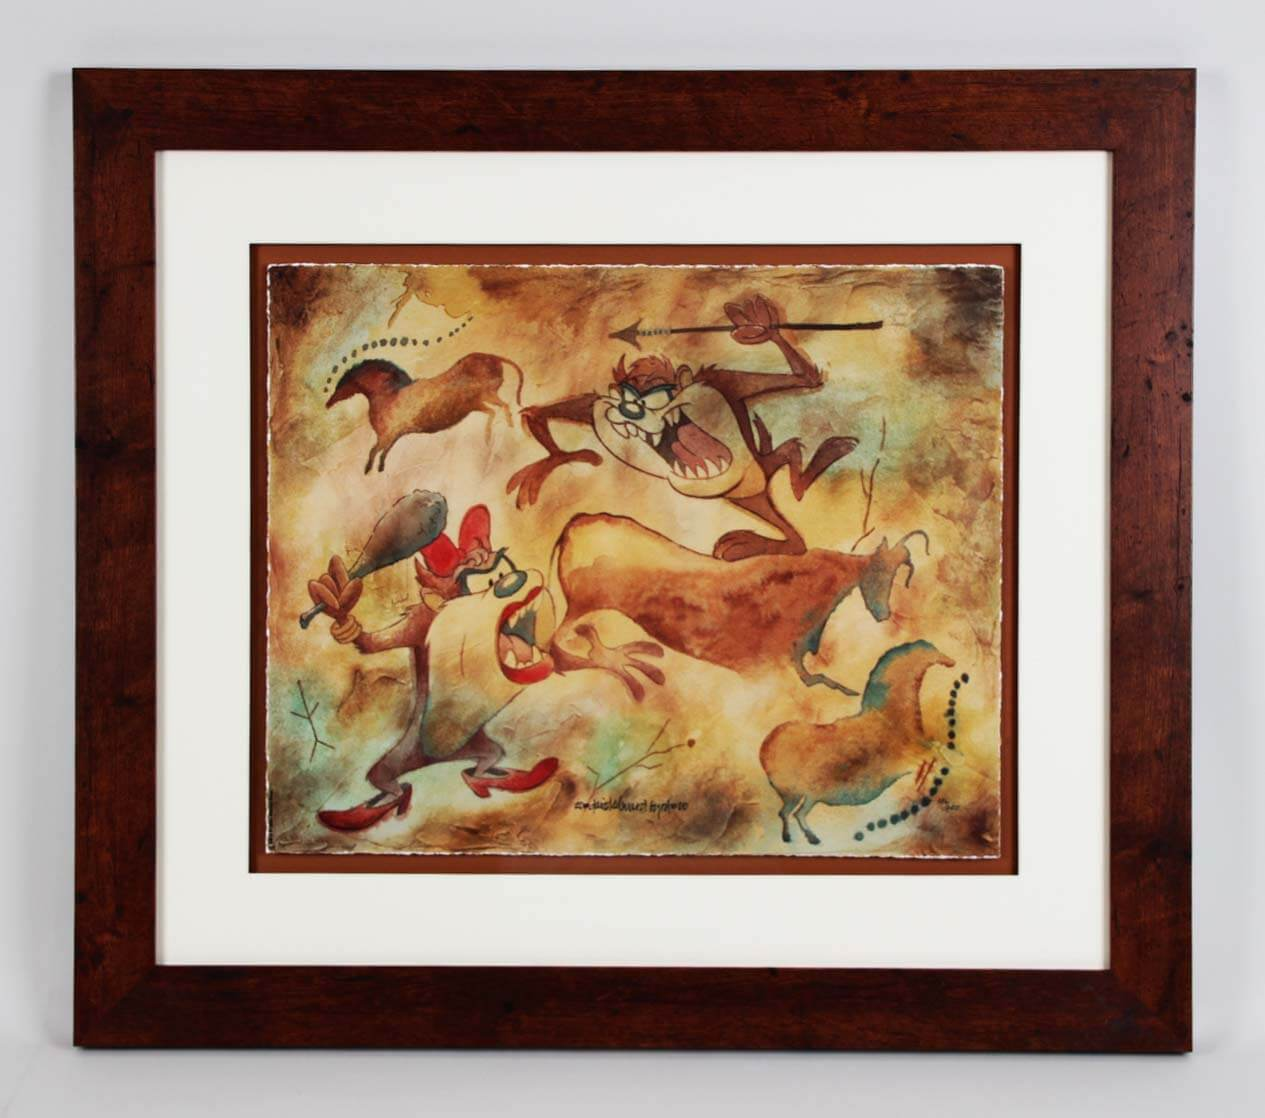 """David E. Byrd Signed """"Taz Cave Painting"""" Giclee Display - COA"""